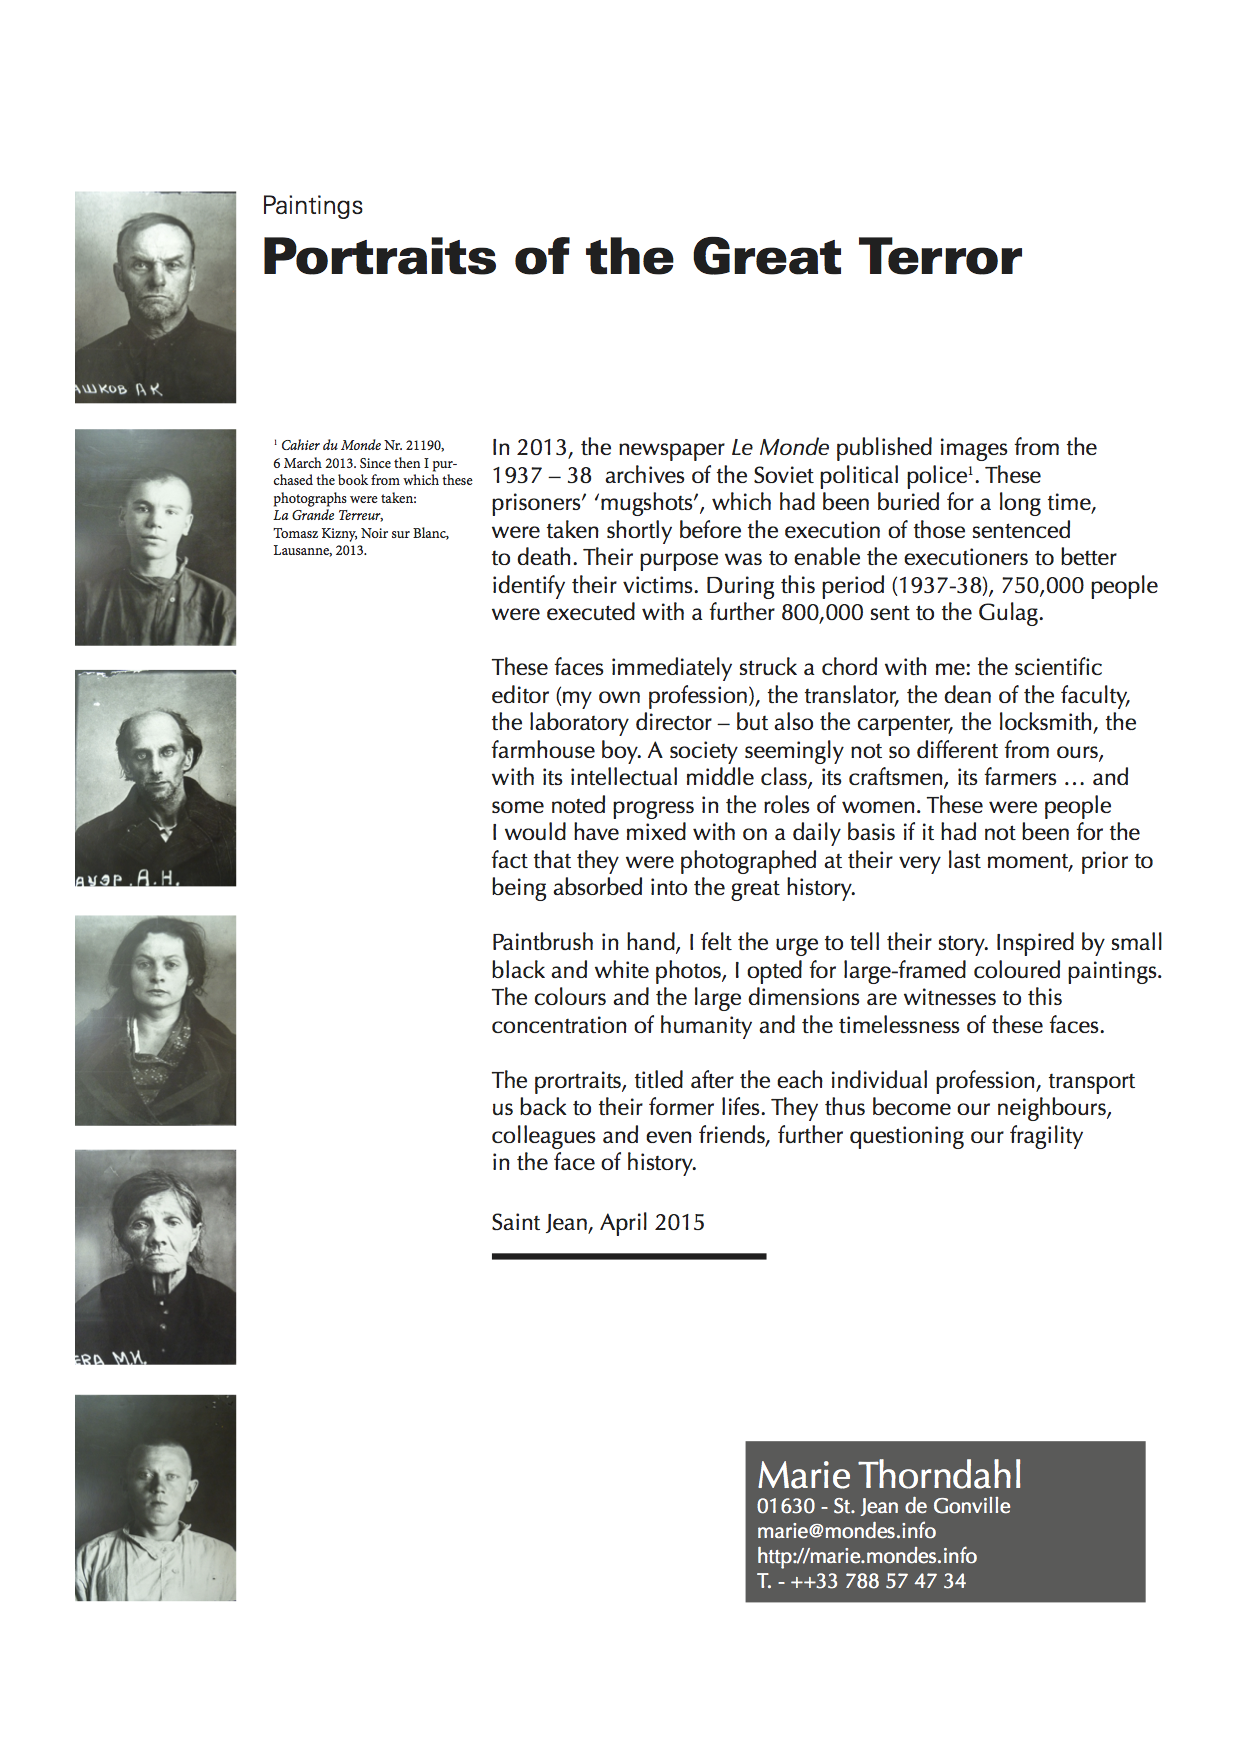 Portraits of the Great Terror Story